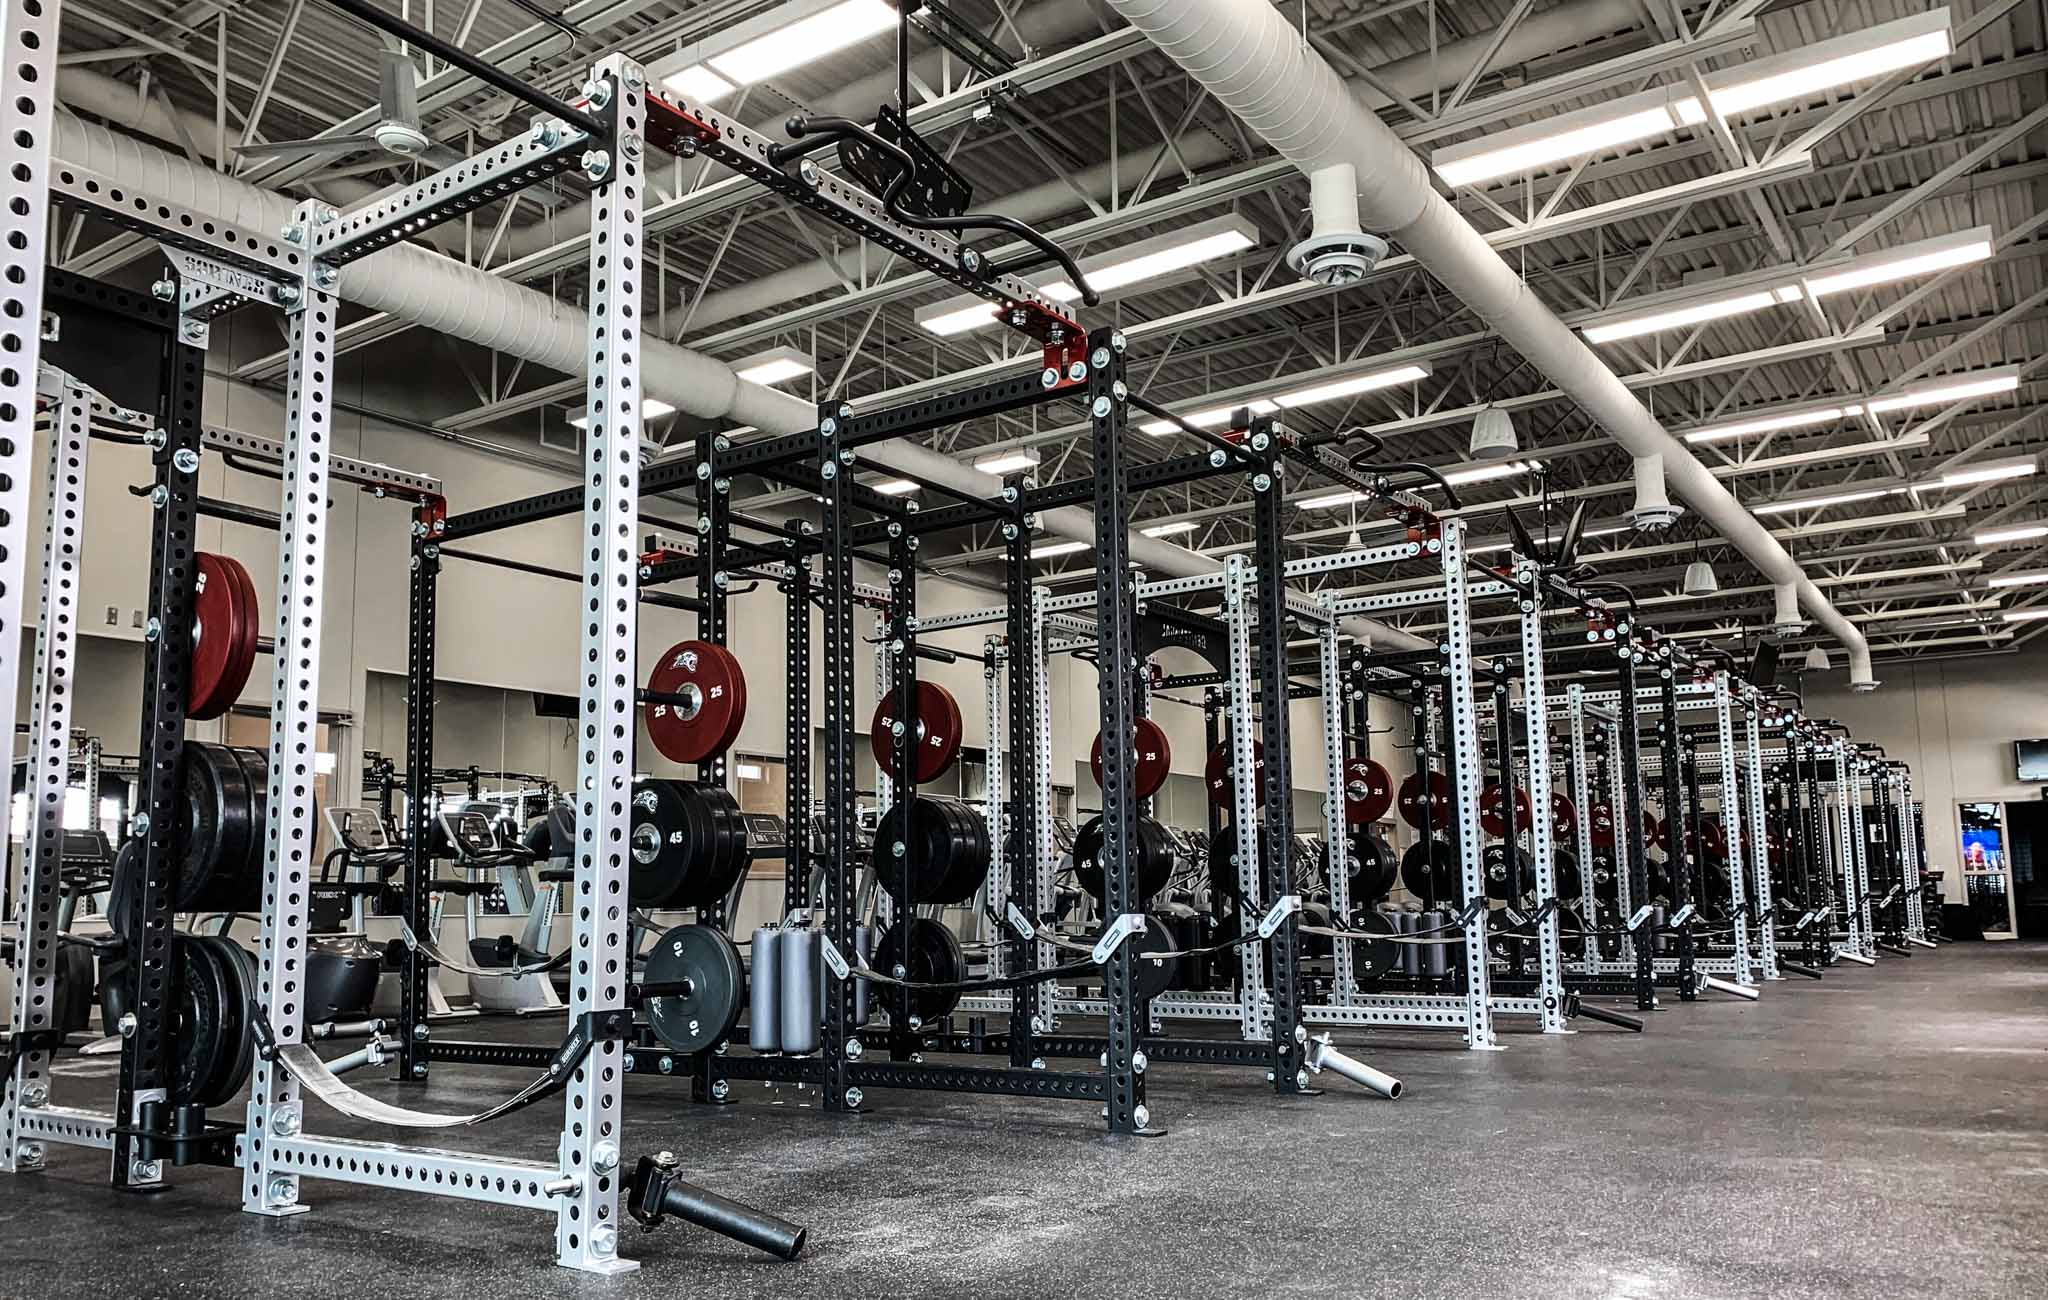 Ankeny Centennial High School training facility